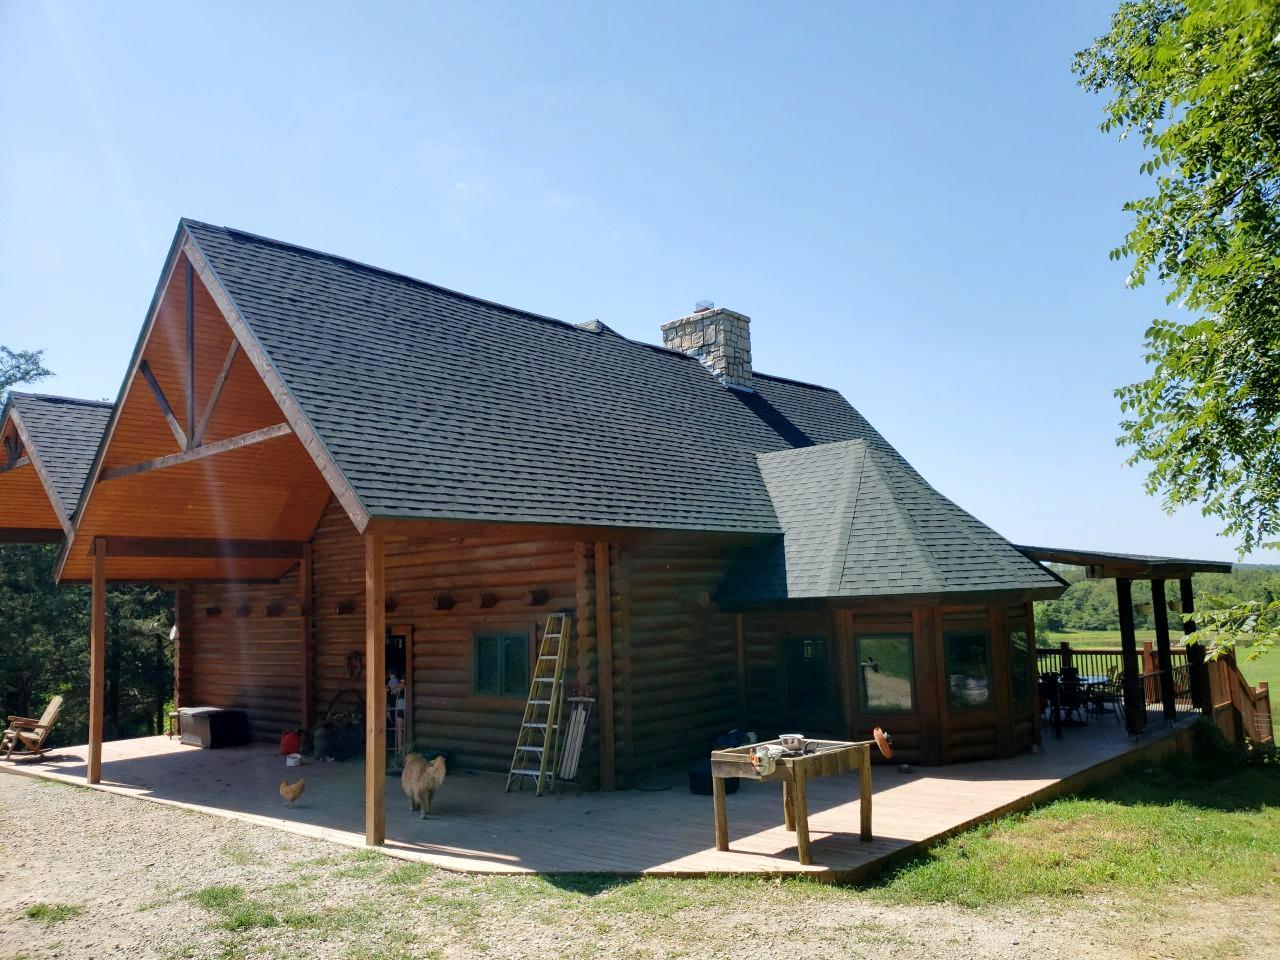 New Roof Installed at Home in Ottawa, KS - After Photo